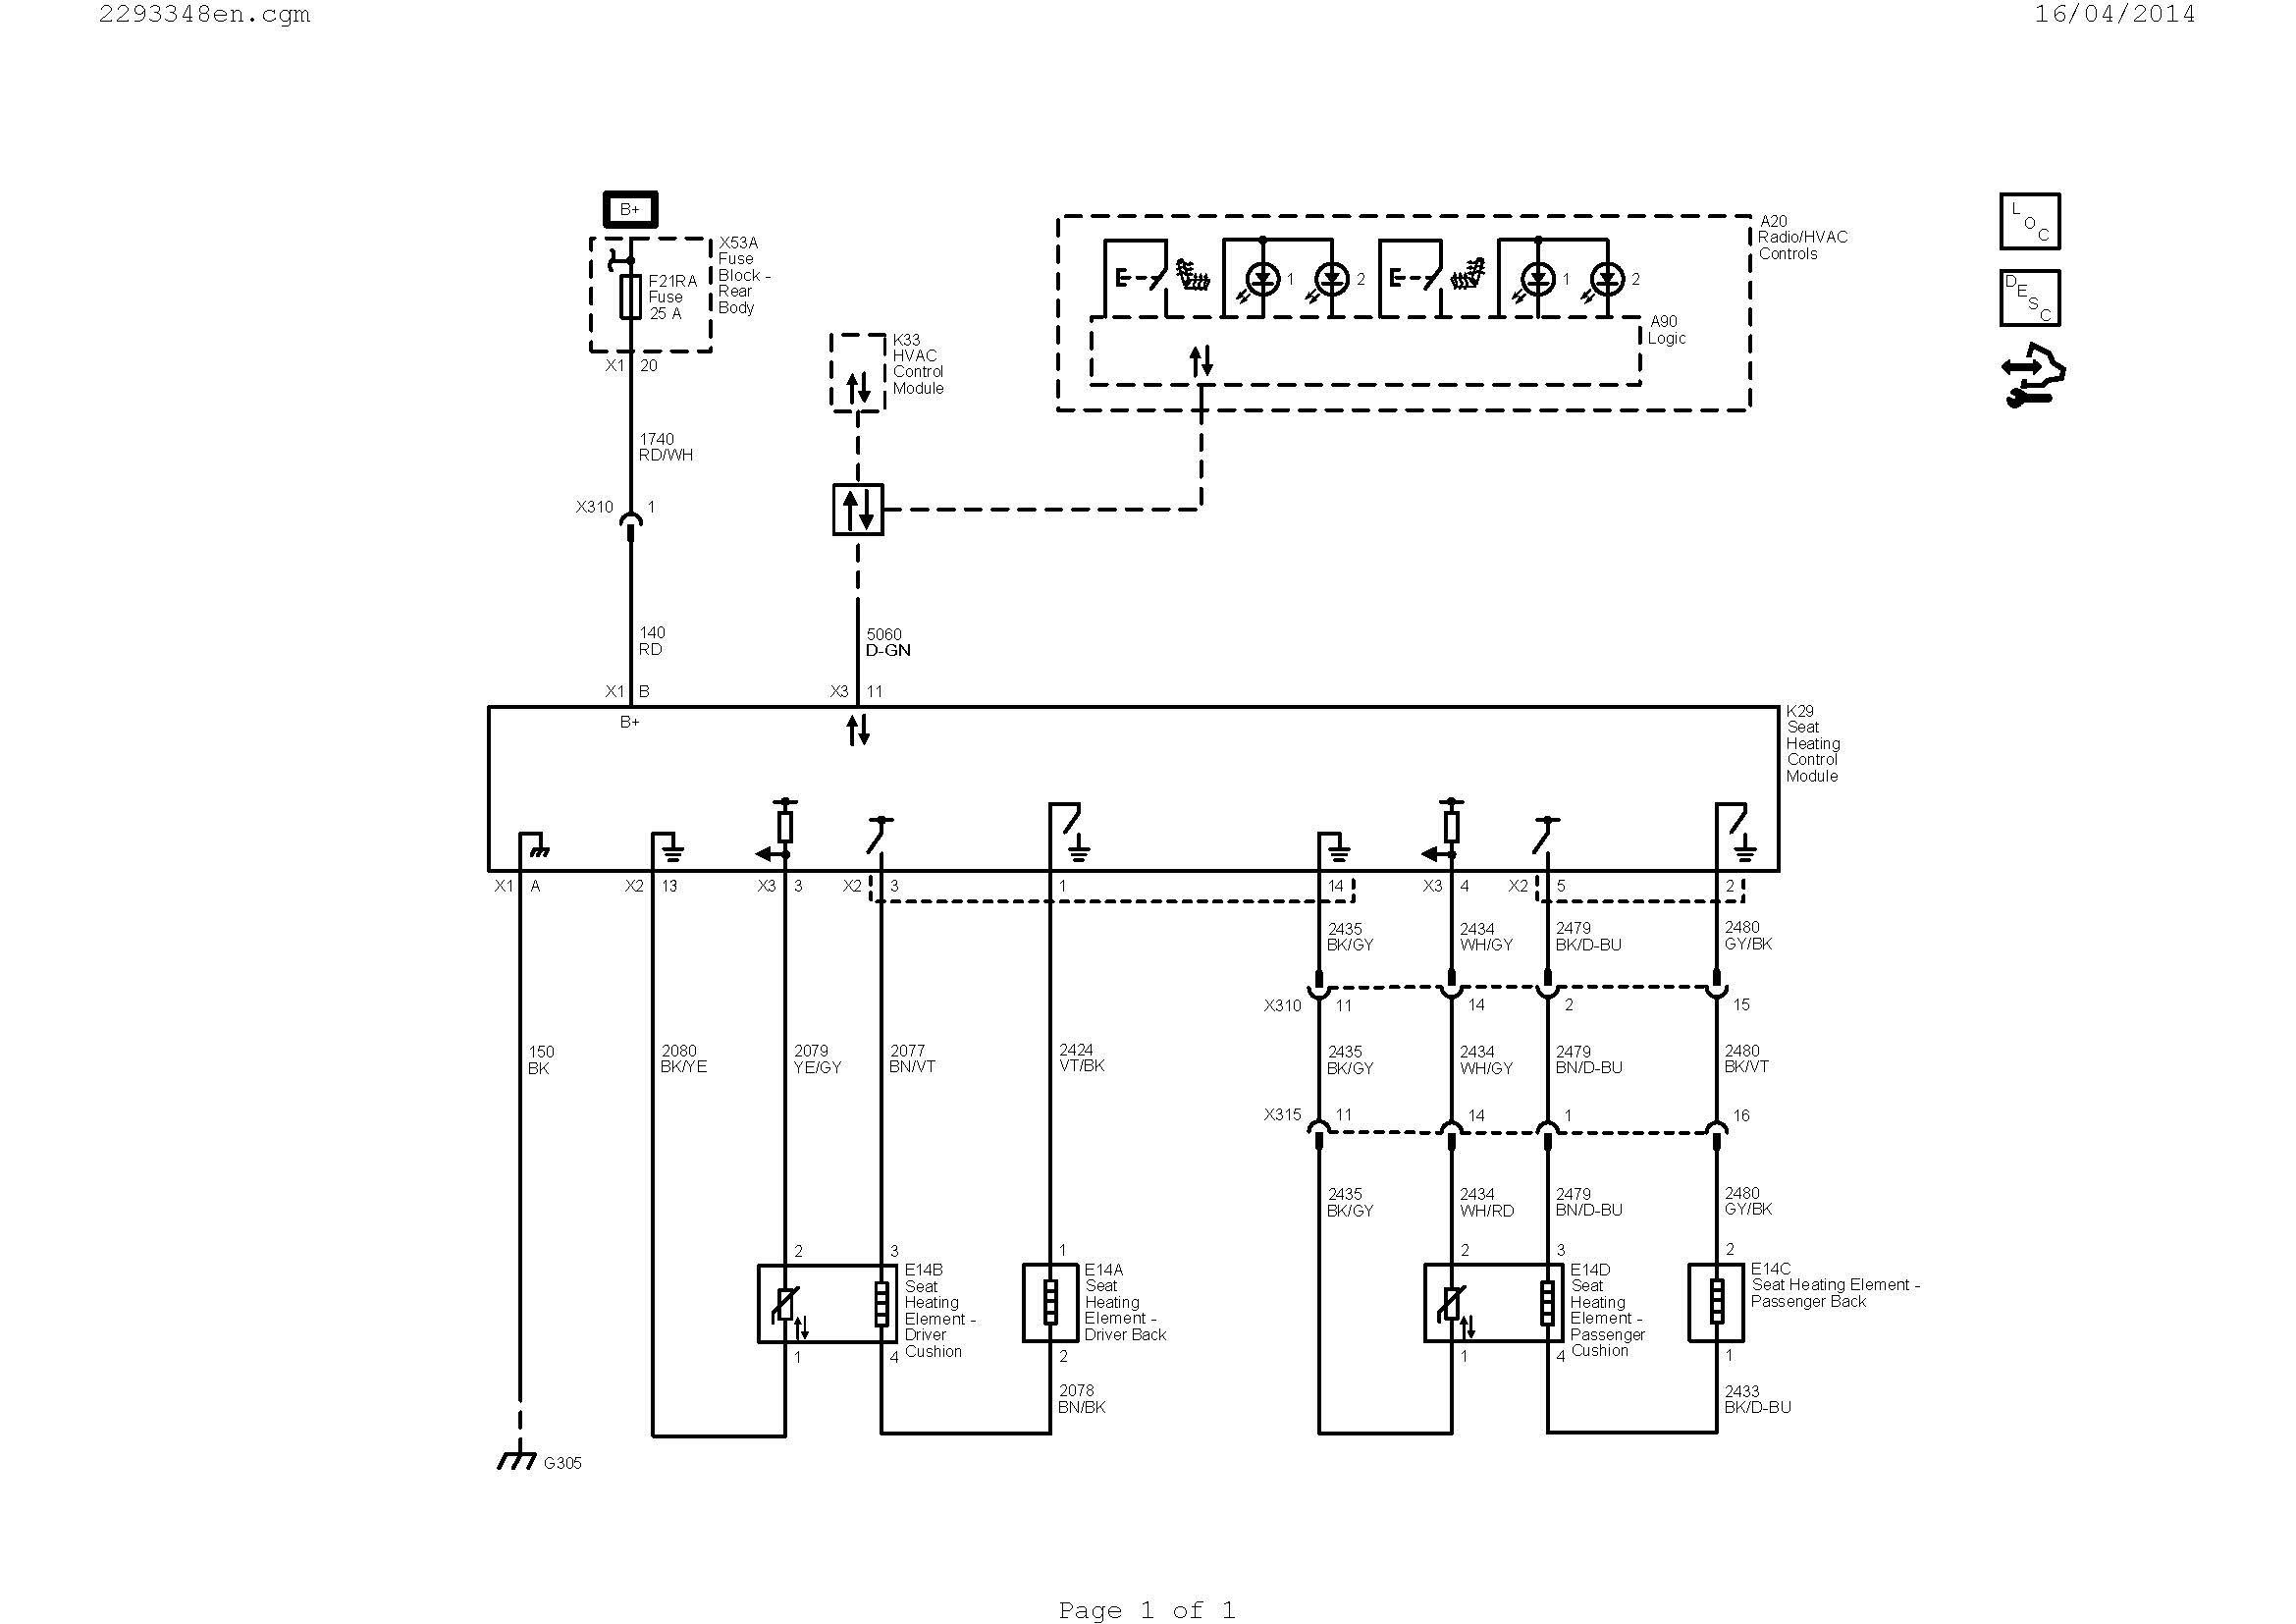 rheem rhllhm3617ja wiring diagram Download-T568b Wiring Diagram Control Relay Wiring Diagram Download Wiring Diagram for A Relay Switch Save 17-s